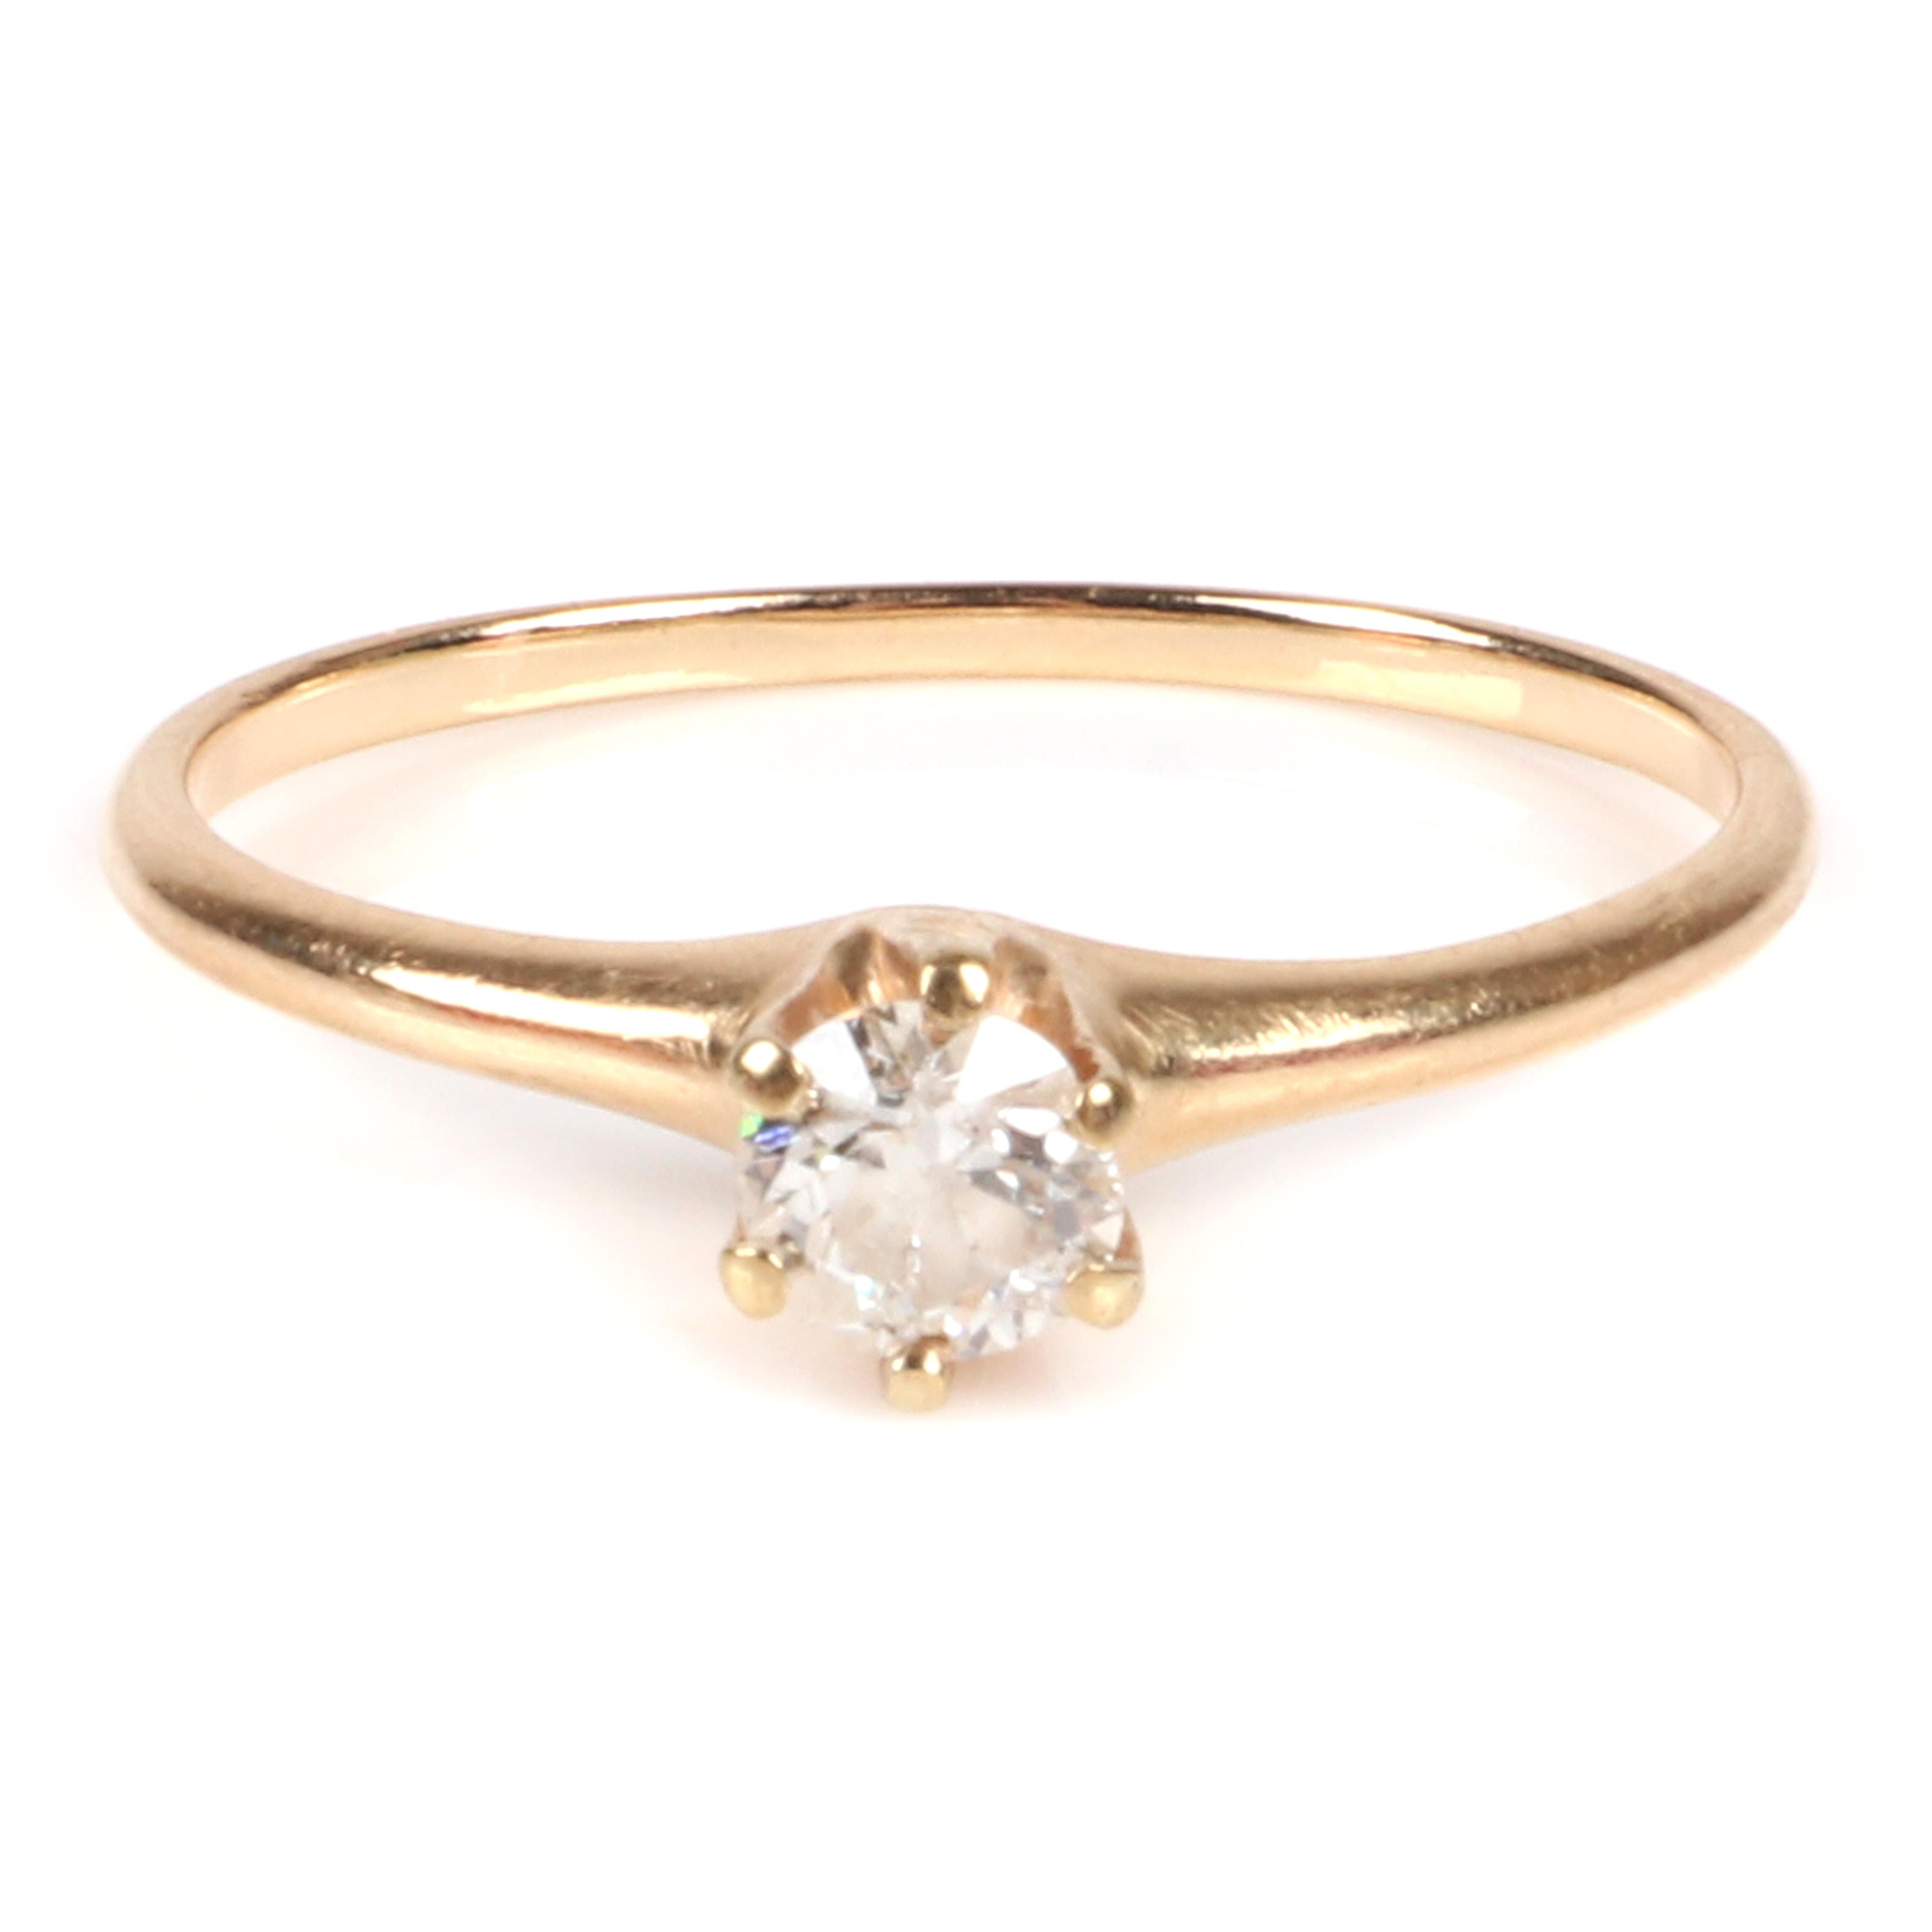 Old European cut Diamond solitaire 14K yellow gold engagement ring. Ring size 6 1/2